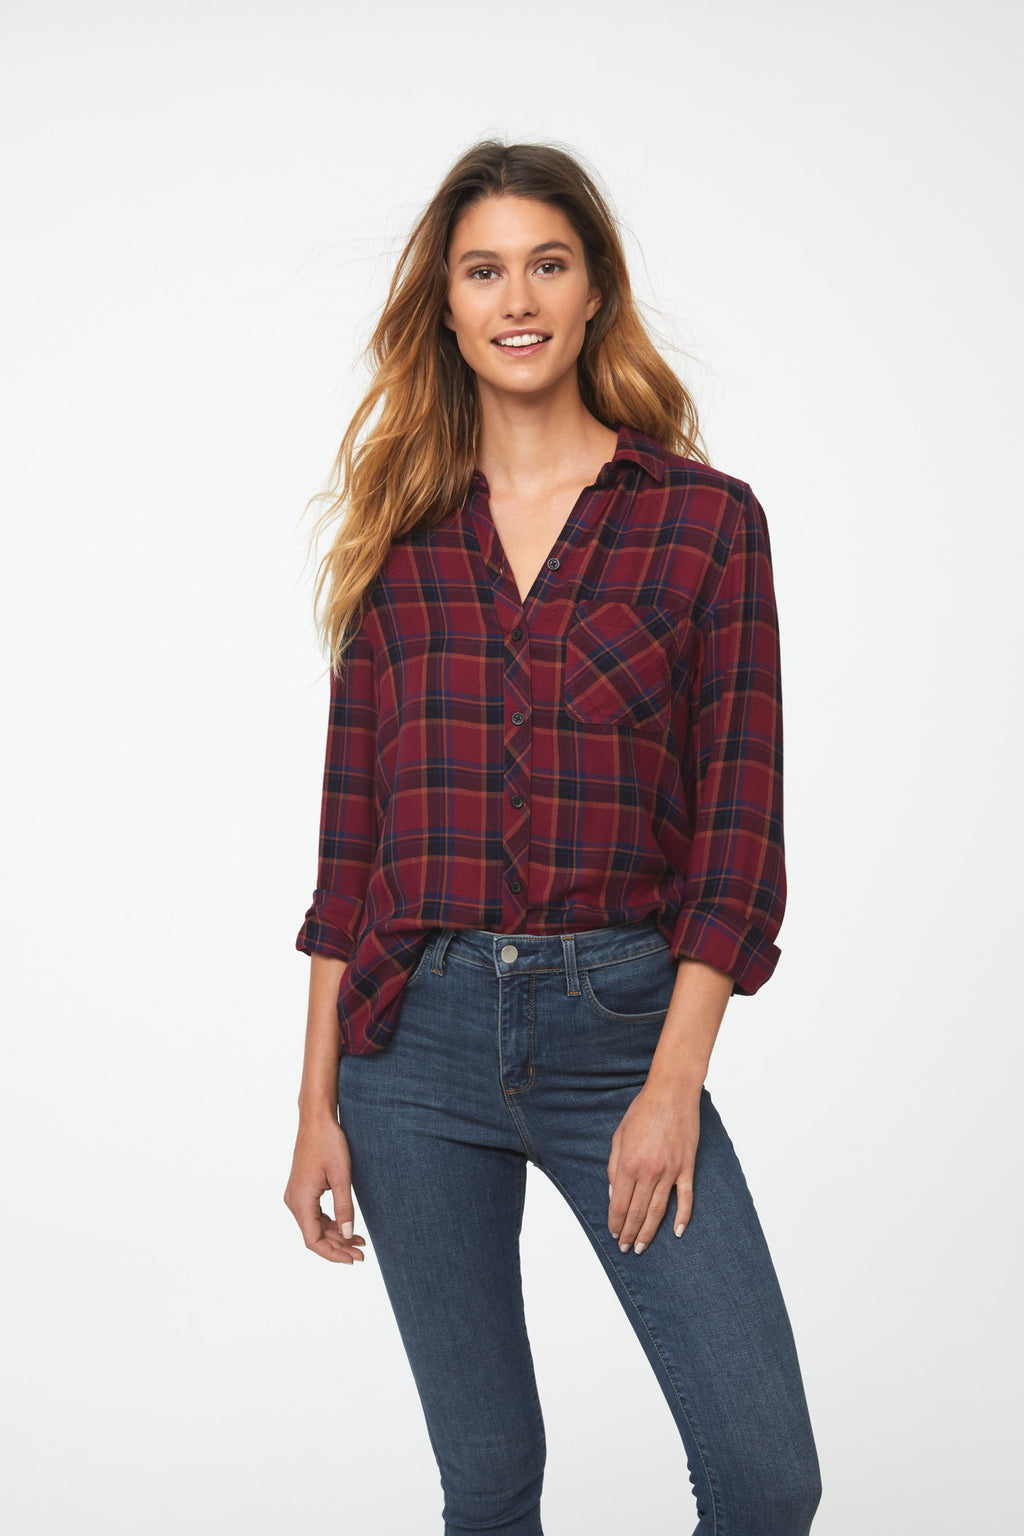 woman wearing a long sleeve, button-down, crimson red plaid shirt with single chest pocket